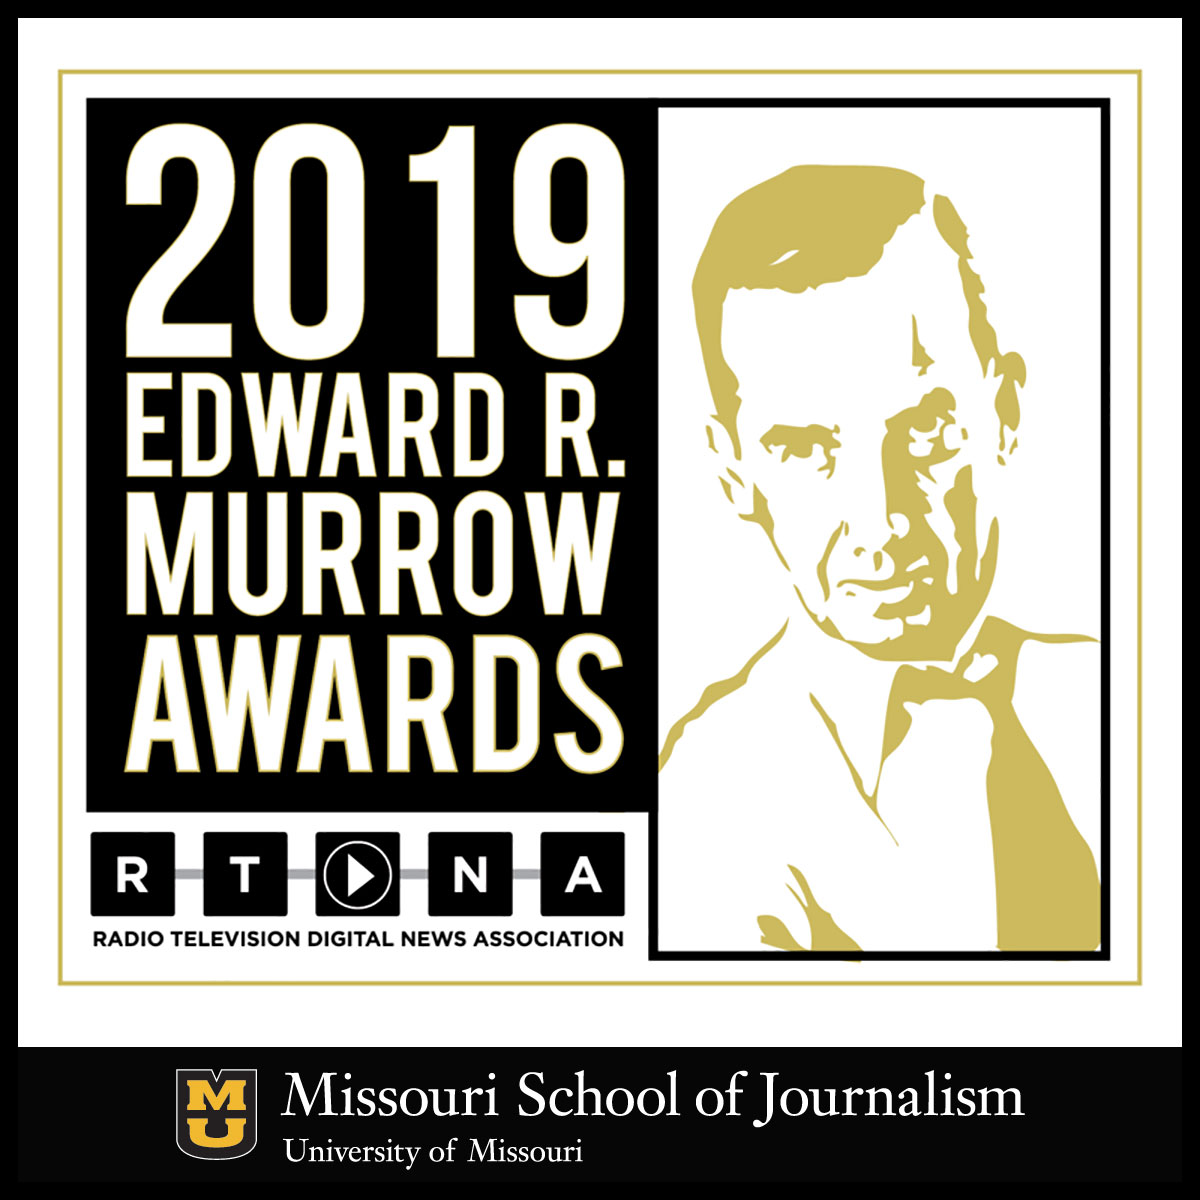 2019 Edward R. Murrow Awards